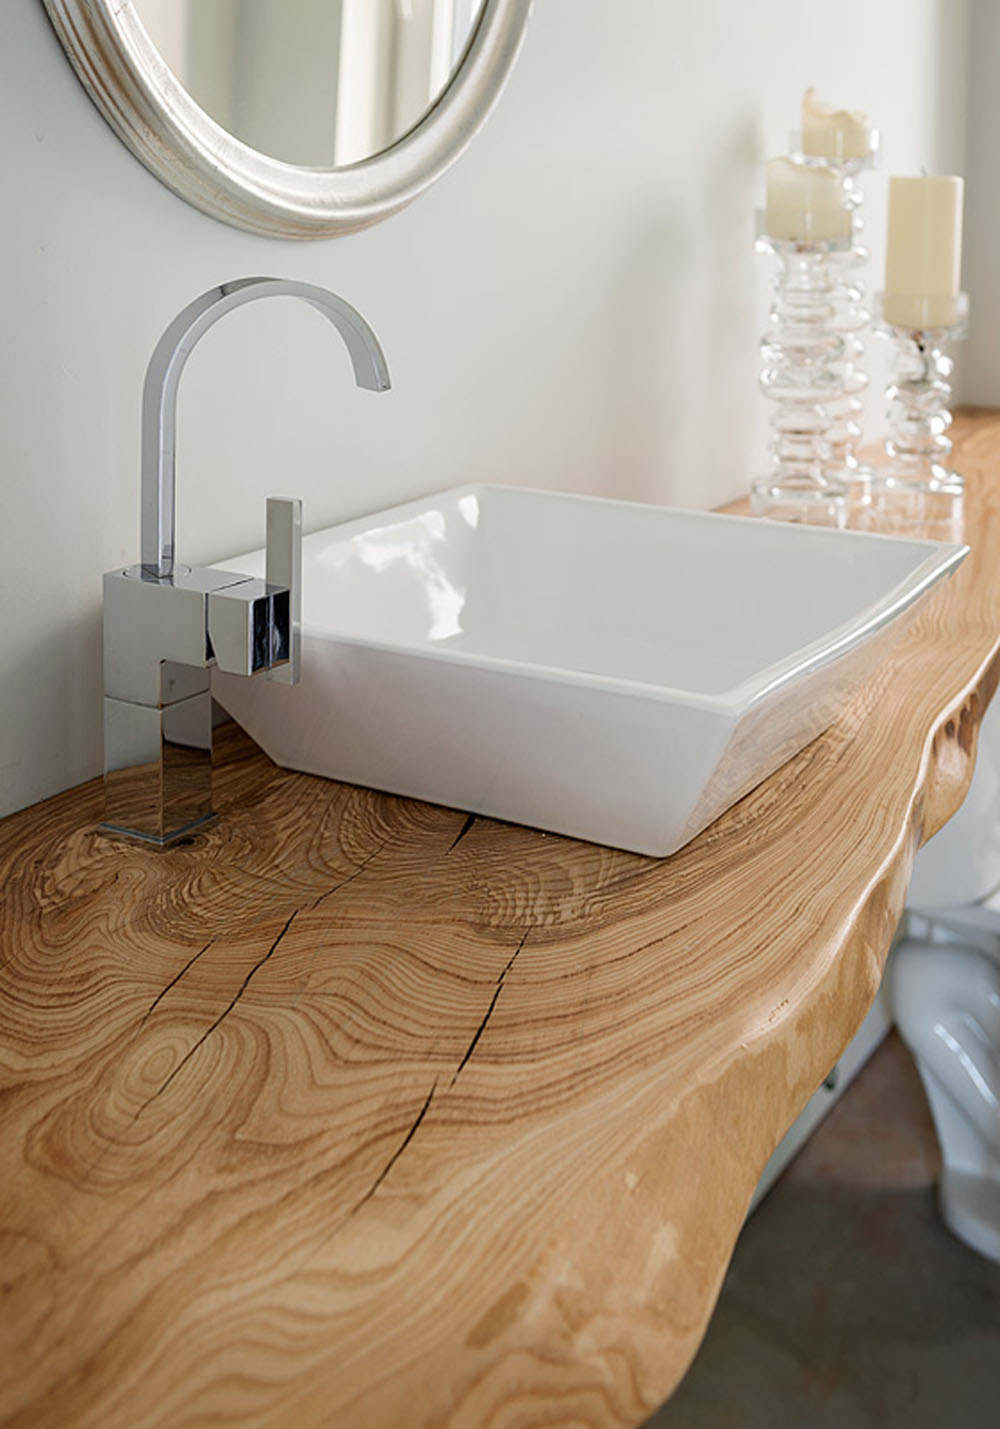 Sculptural Sink Placed on a Natural Wood Counter